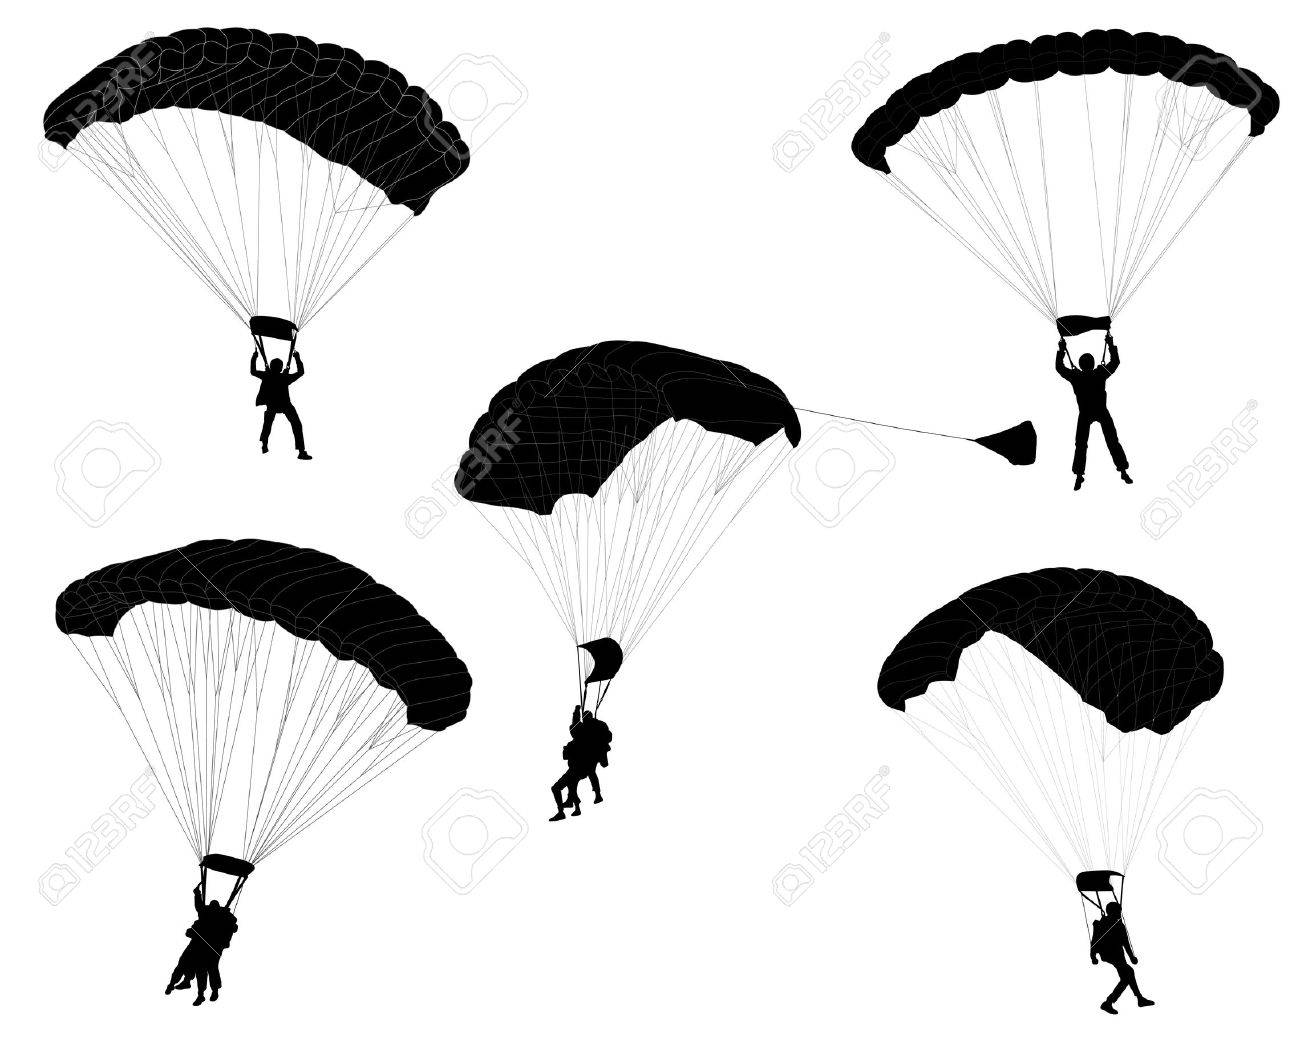 skydivers silhouettes collection - vector - 32786535